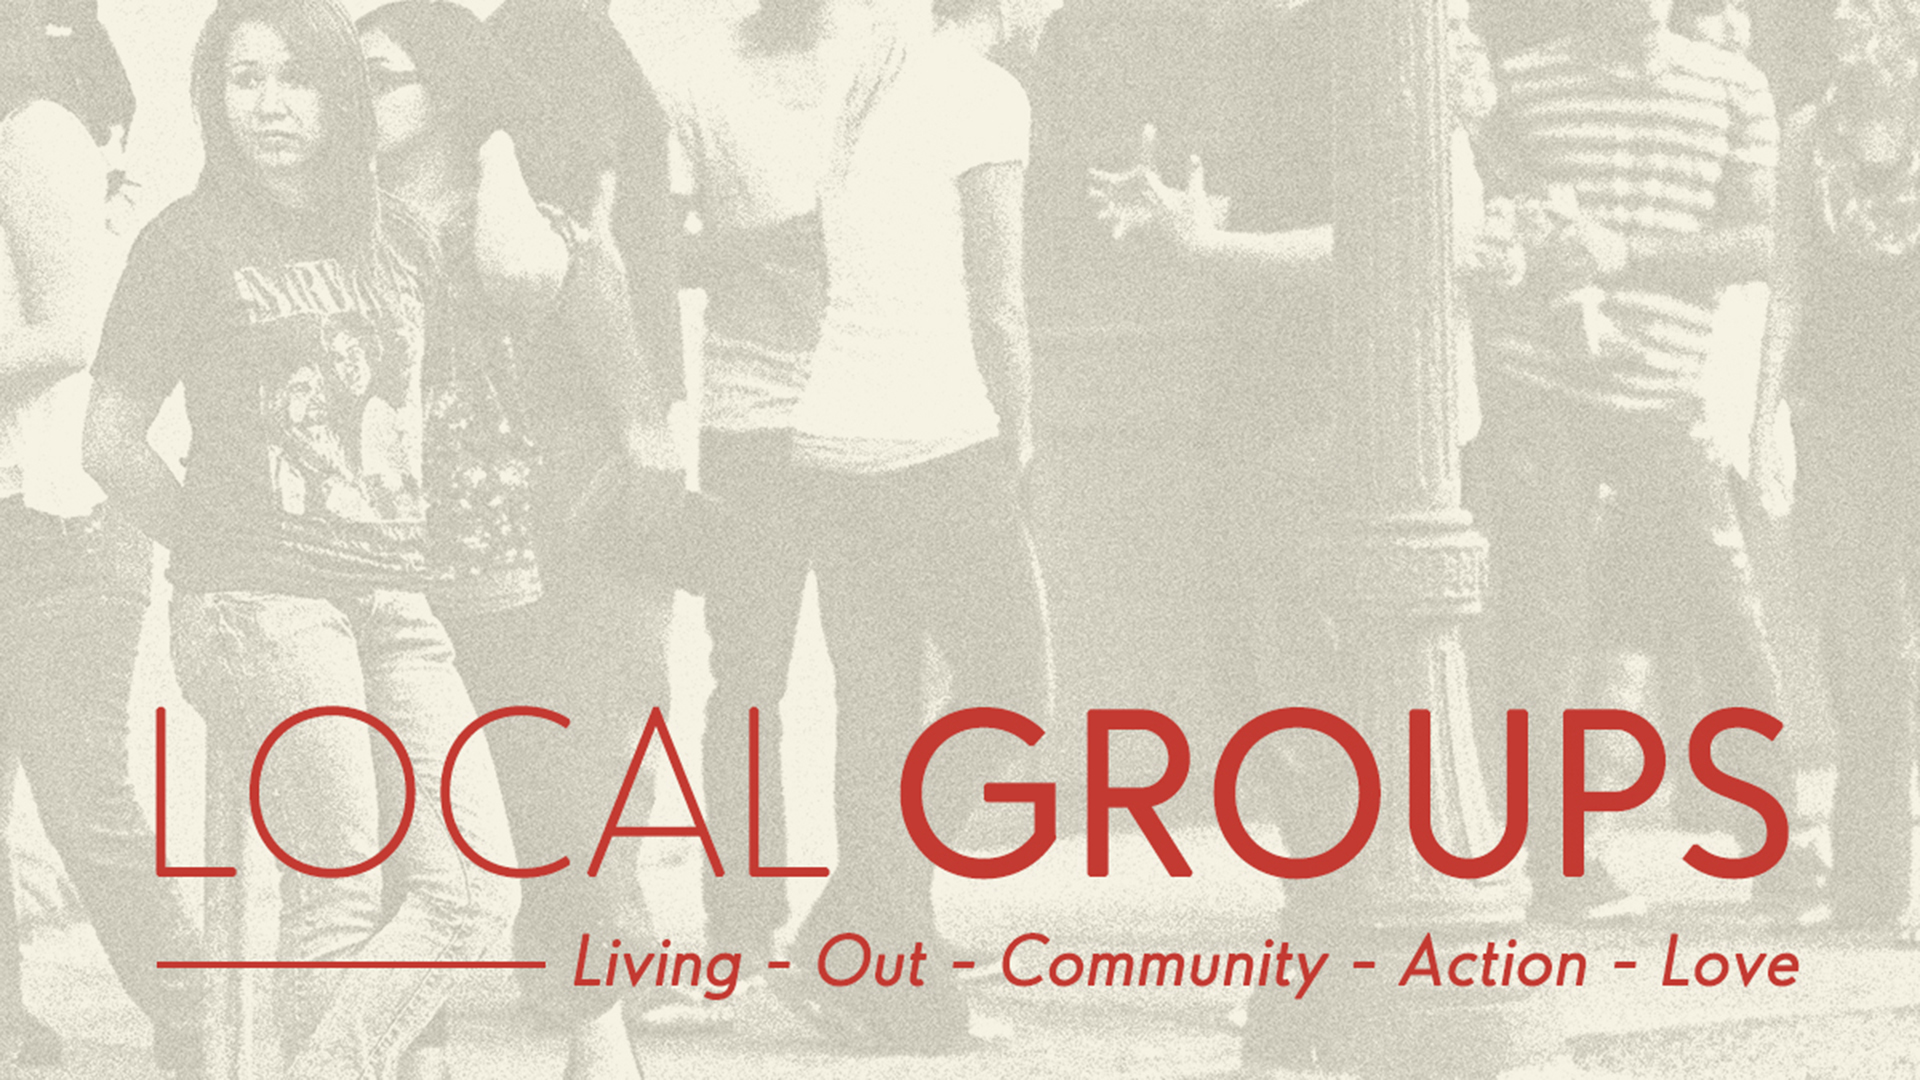 Local groups tv